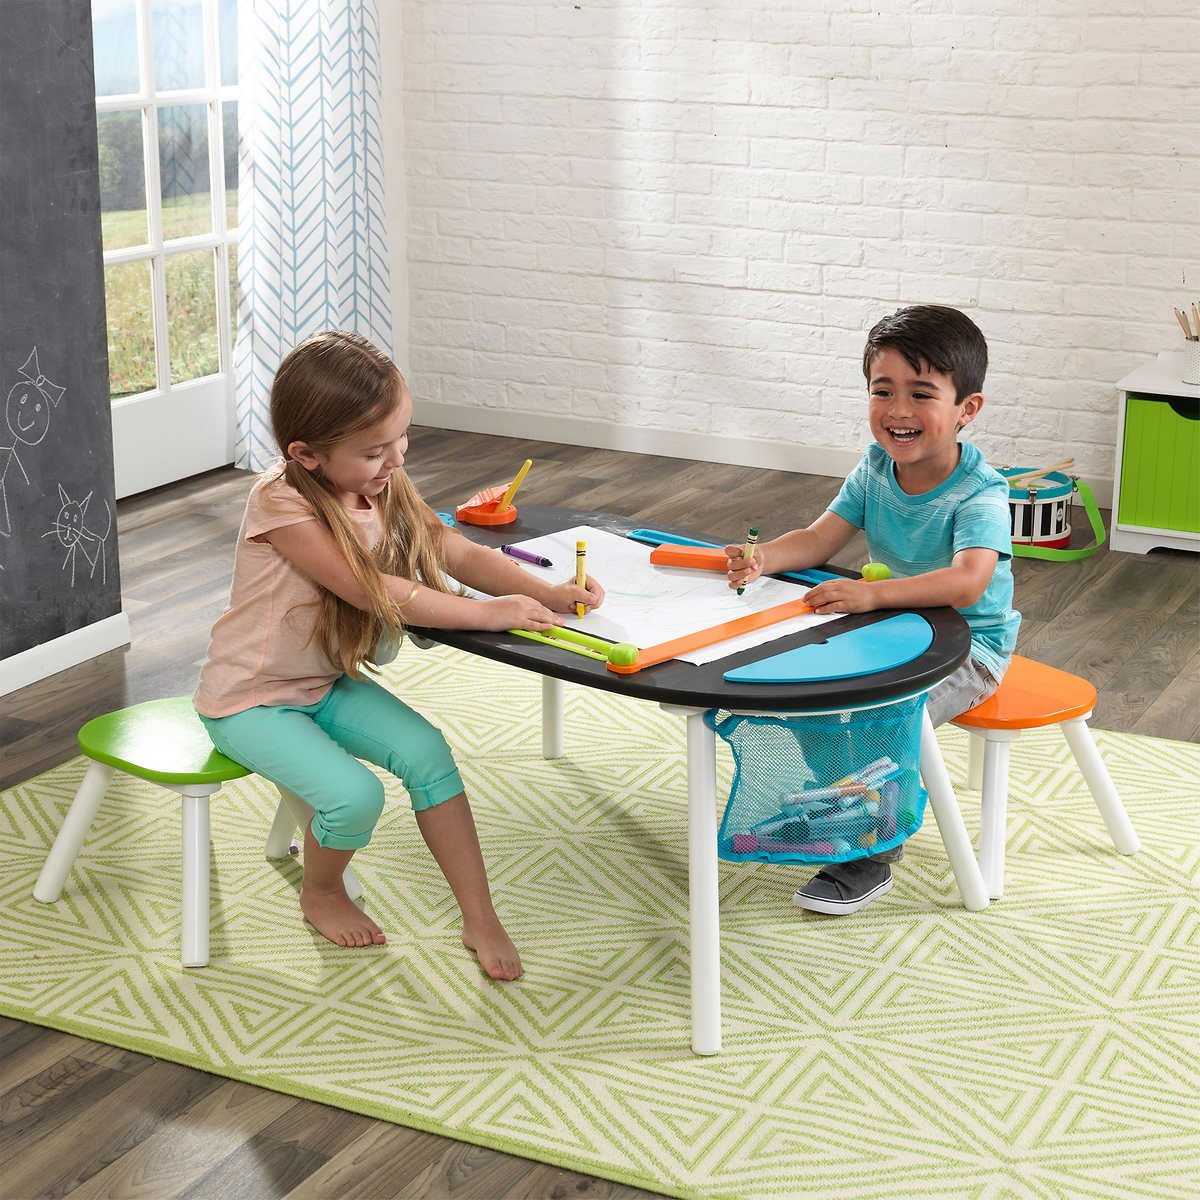 Durable Deluxe Chalkboard Art Table W/ 3 Sealable Spill-Proof Paint Cups, 2 Paper Rolls, 2 Colorful Surdy Stools Features Mesh Storage Compartment Great For Playroom For Ages 3 and Up by KidKraft (Image #2)